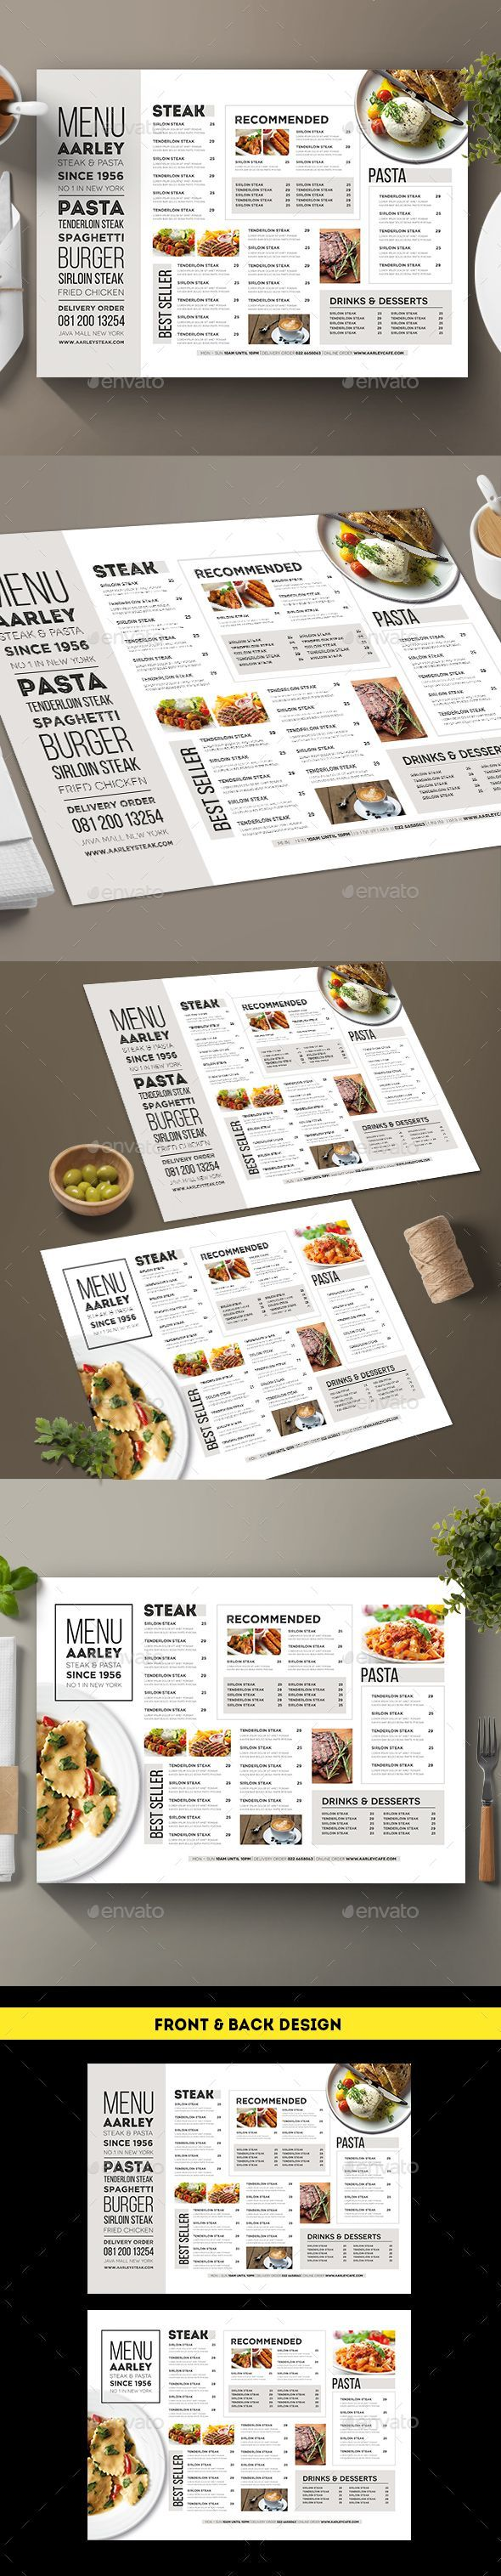 Typography Menu - Food Menus Print Templates Download here : https://graphicriver.net/item/typography-menu/18778849?s_rank=145&ref=Al-fatih